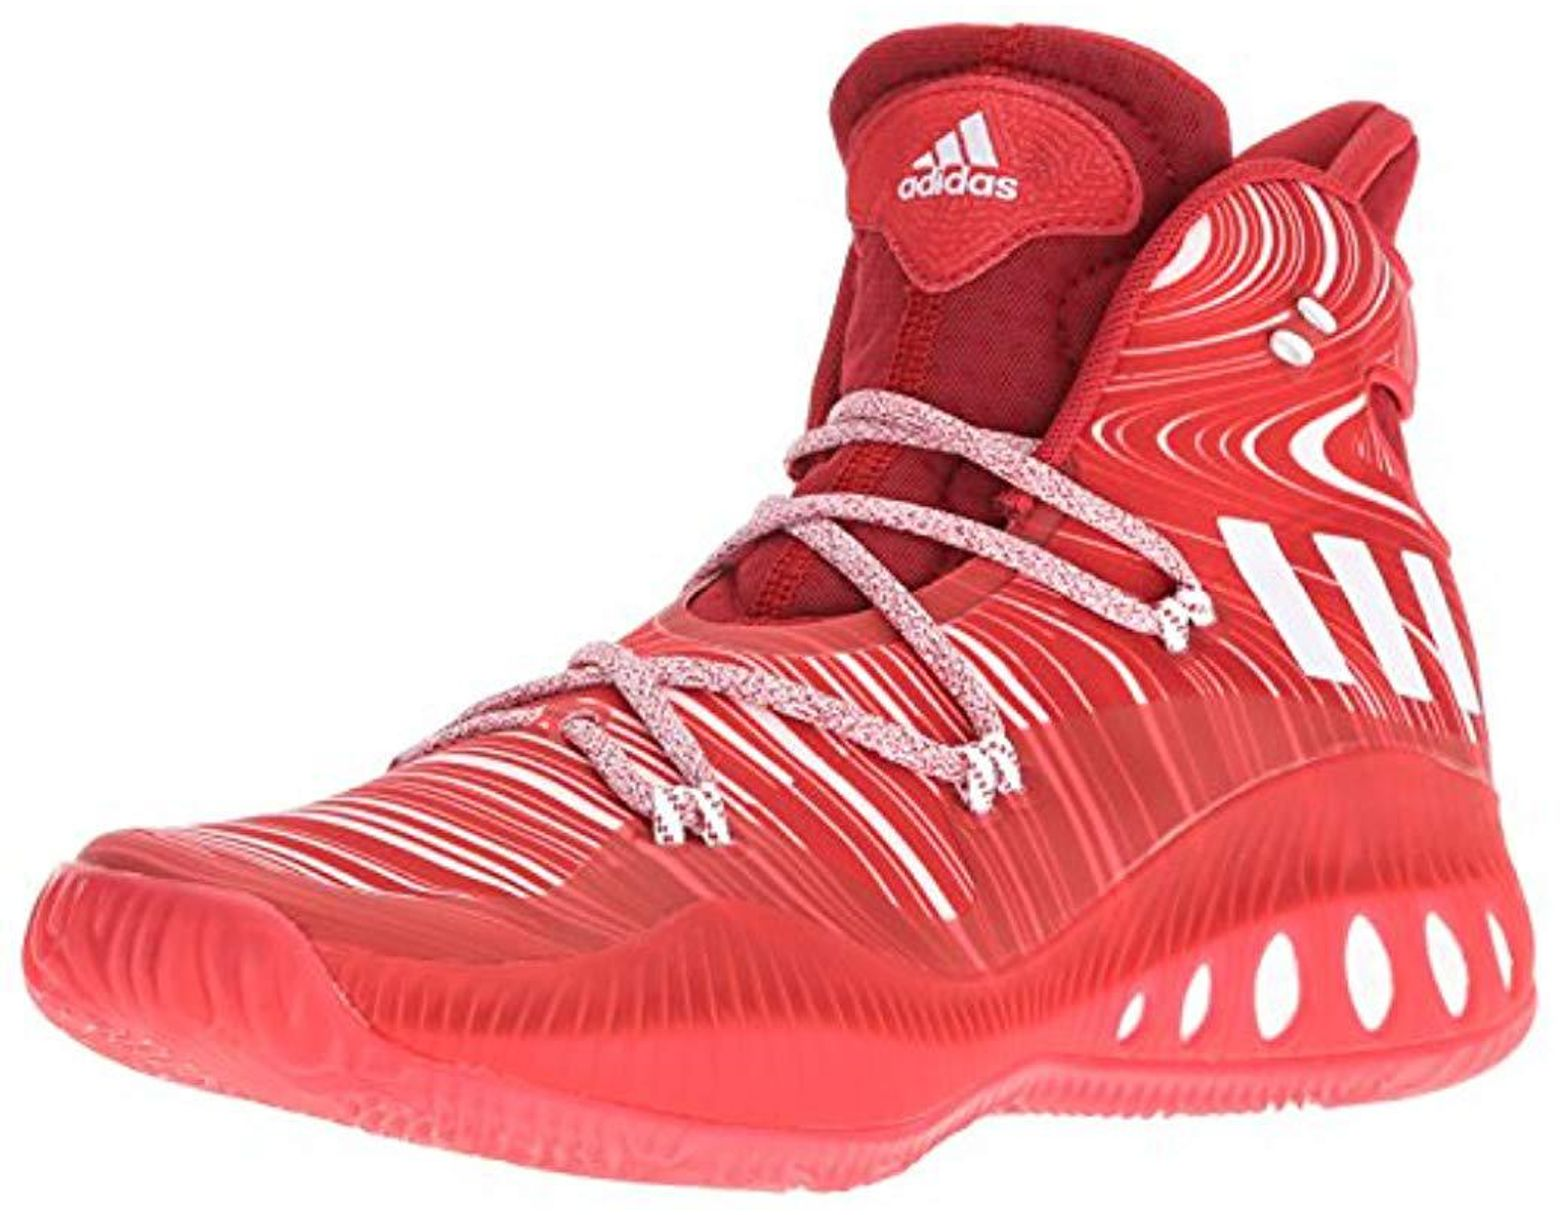 dc7097b75b69a Lyst - adidas Performance Crazy Explosive Basketball Shoe in Red for Men -  Save 8%